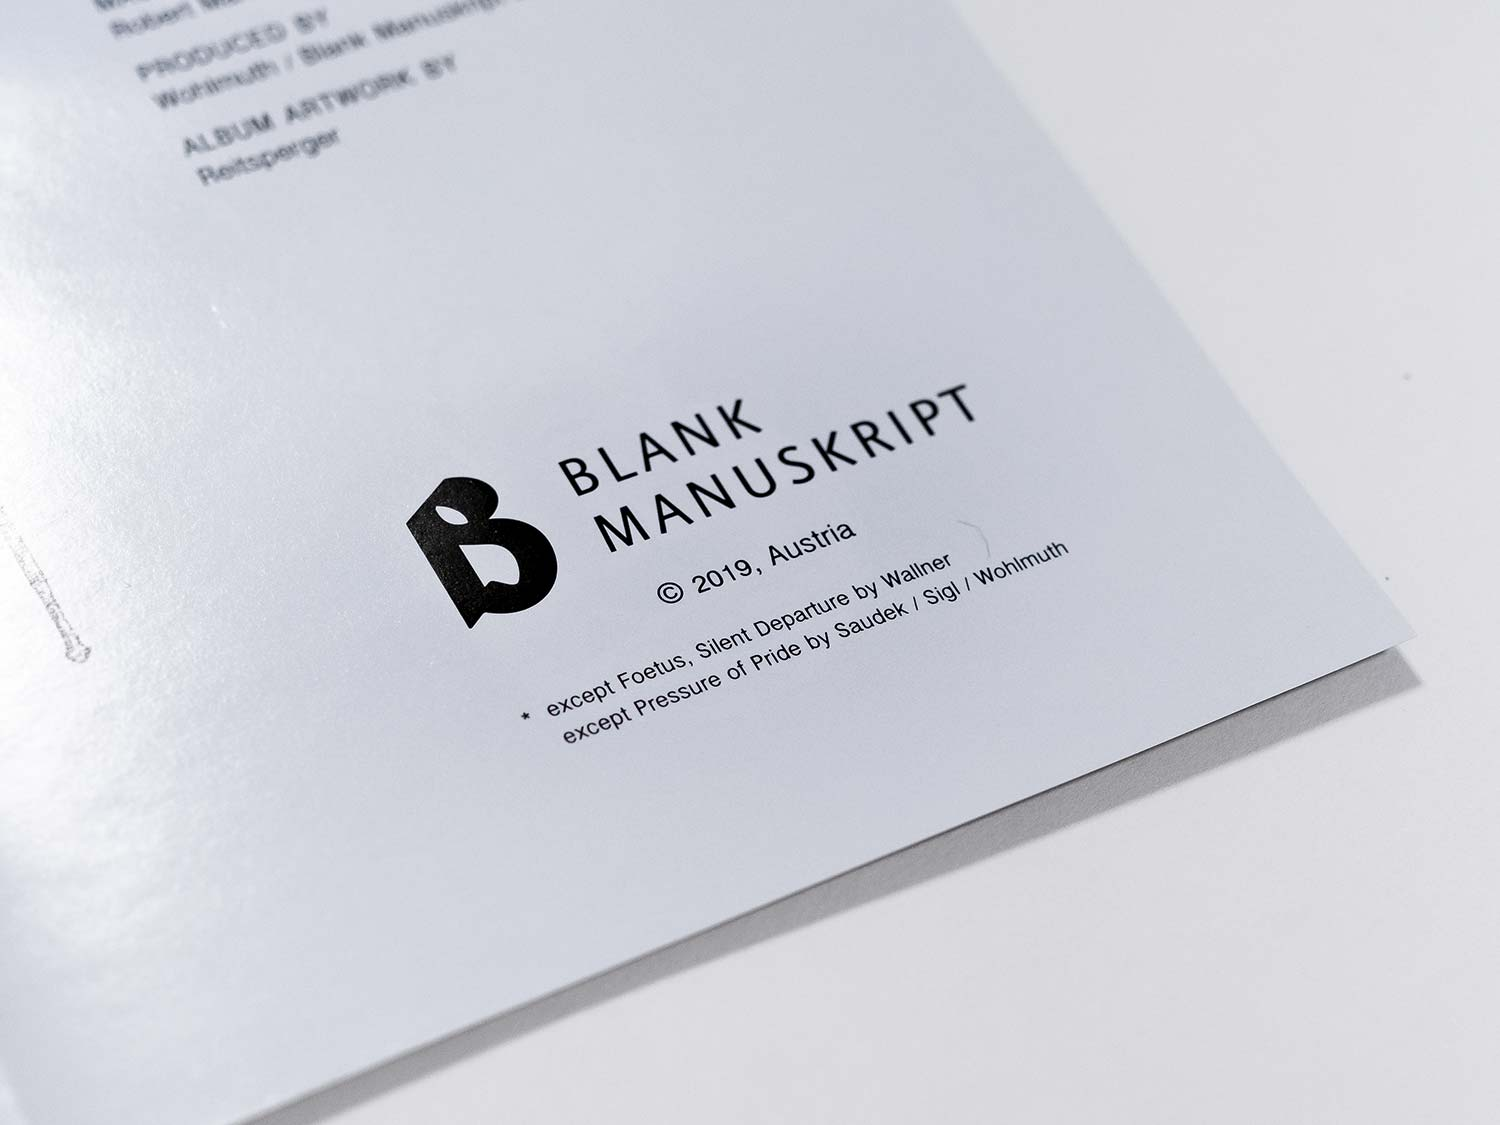 The picture shows a detail of the booklet of Blank Manuskript's release Krasna Hora.